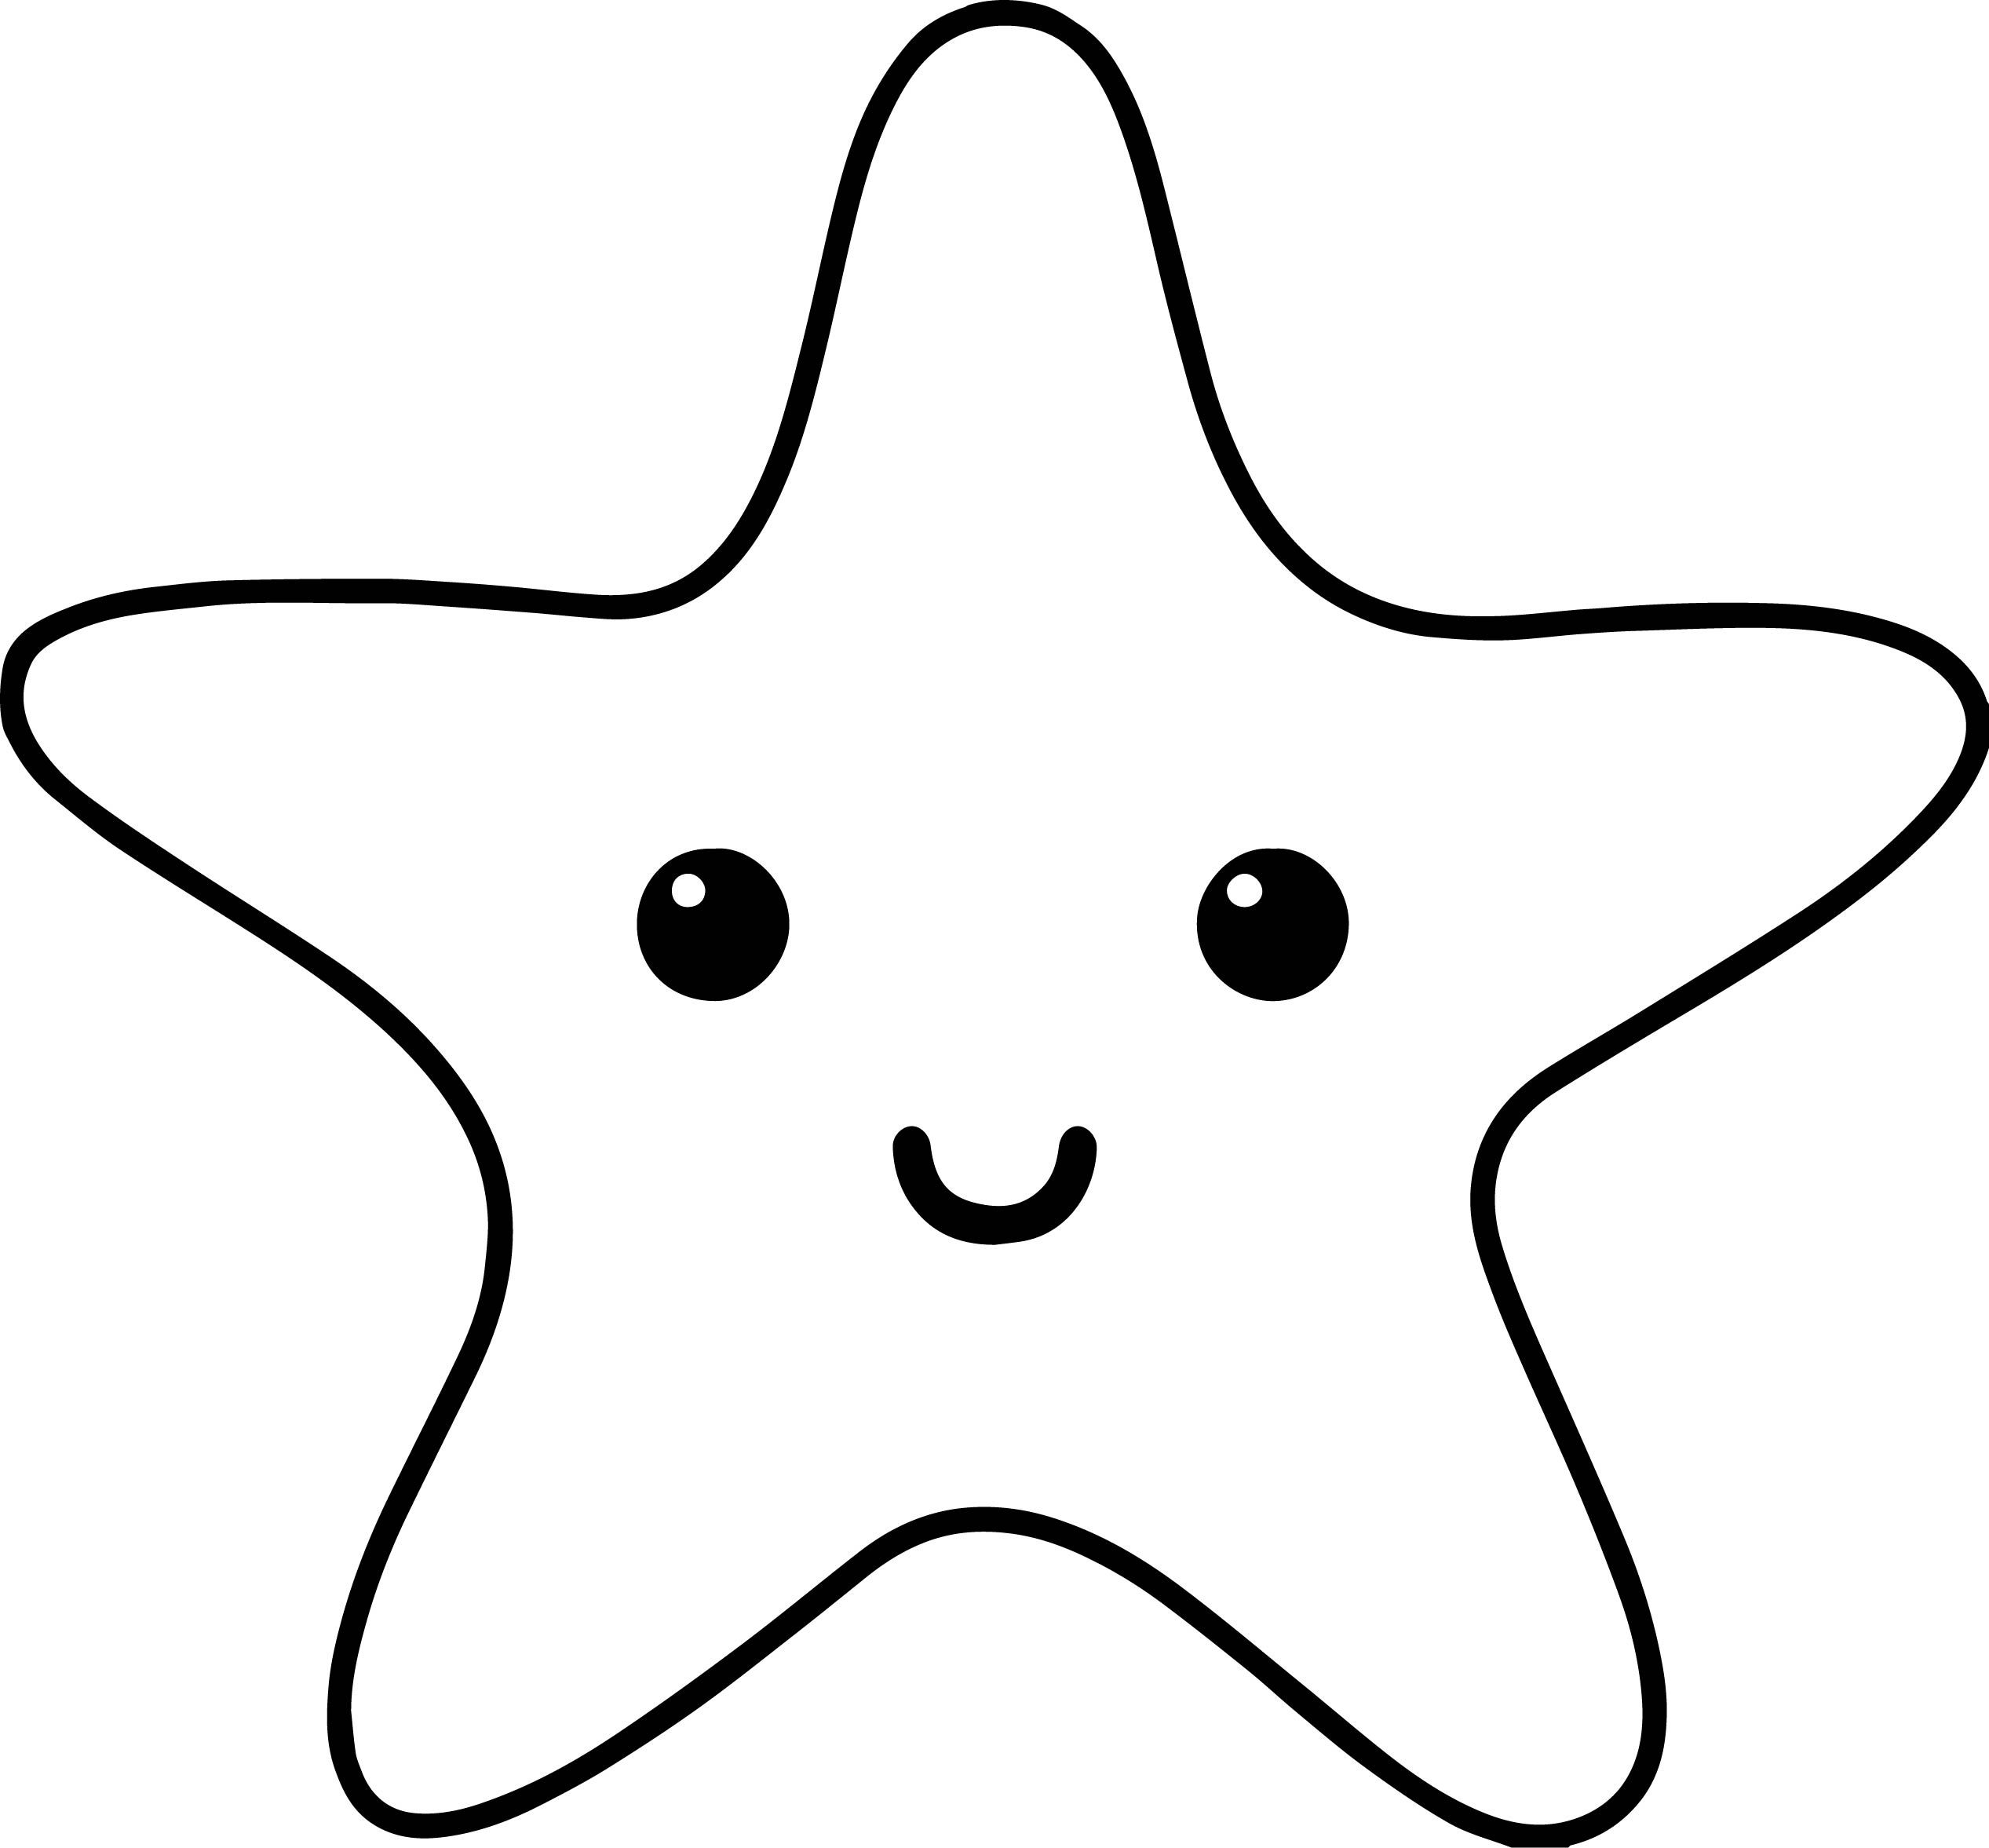 Cool Starfish Sea Creatures Coloring Page Fish Coloring Page Star Coloring Pages Starfish Drawing